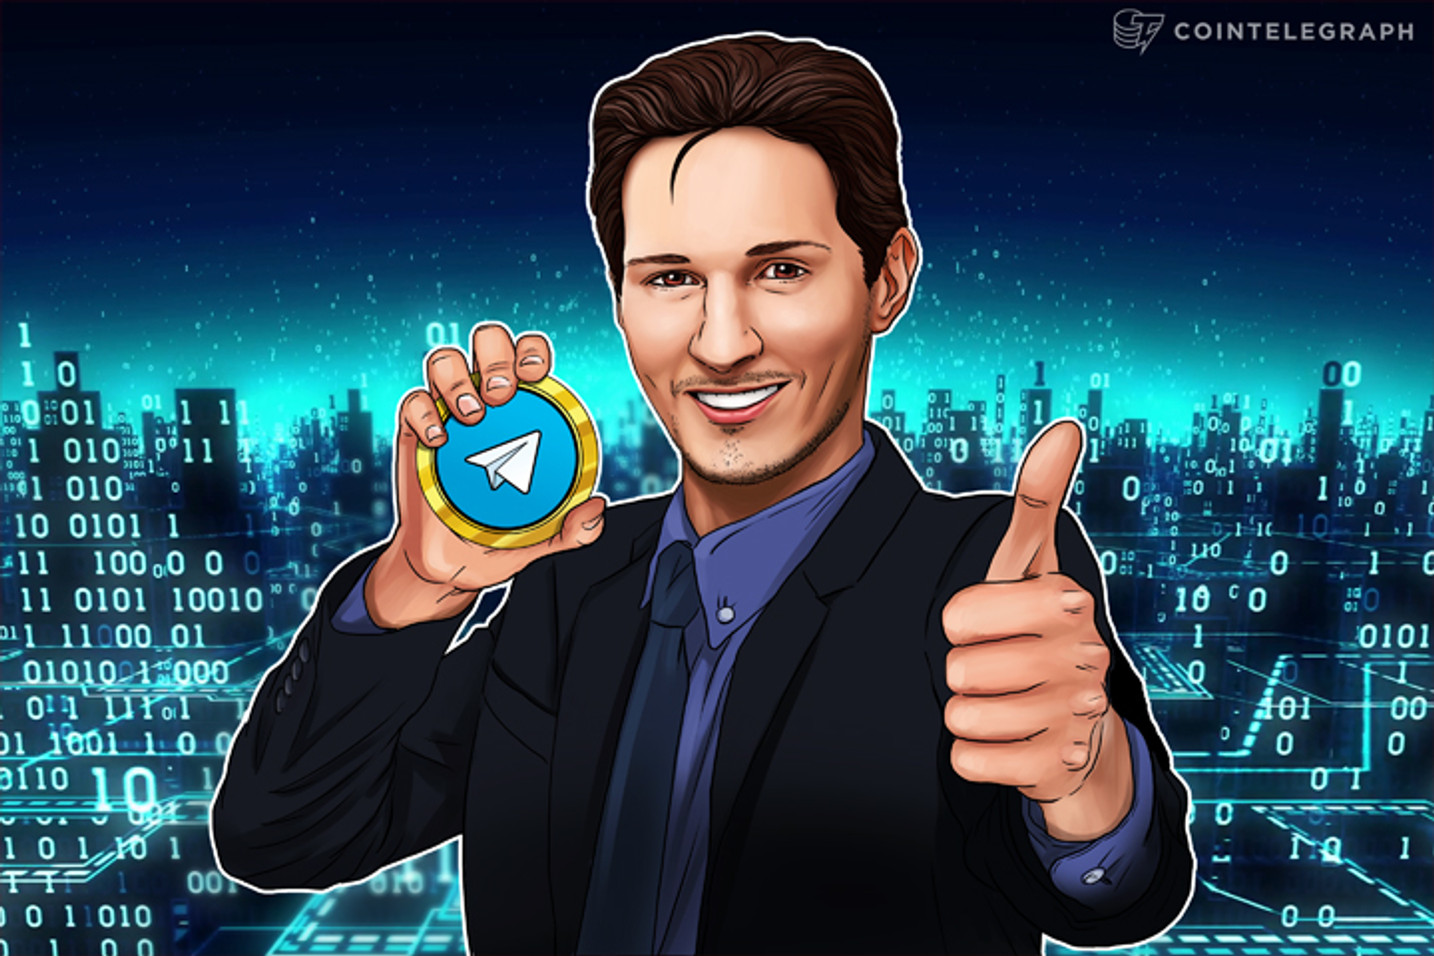 Exclusive: Telegram to Release Blockchain Platform, Native Cryptocurrency